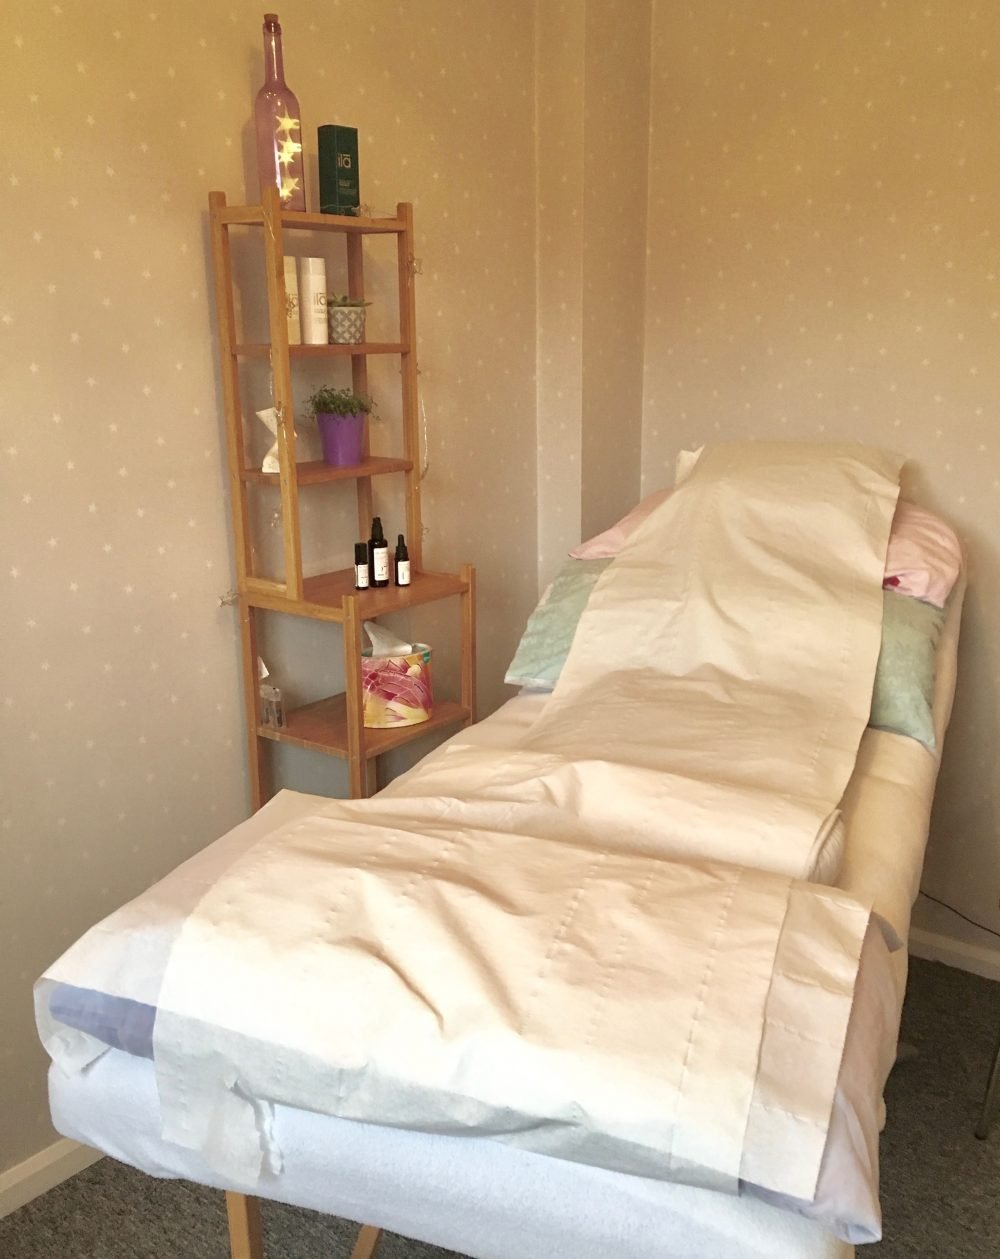 treatment bed for reflexology